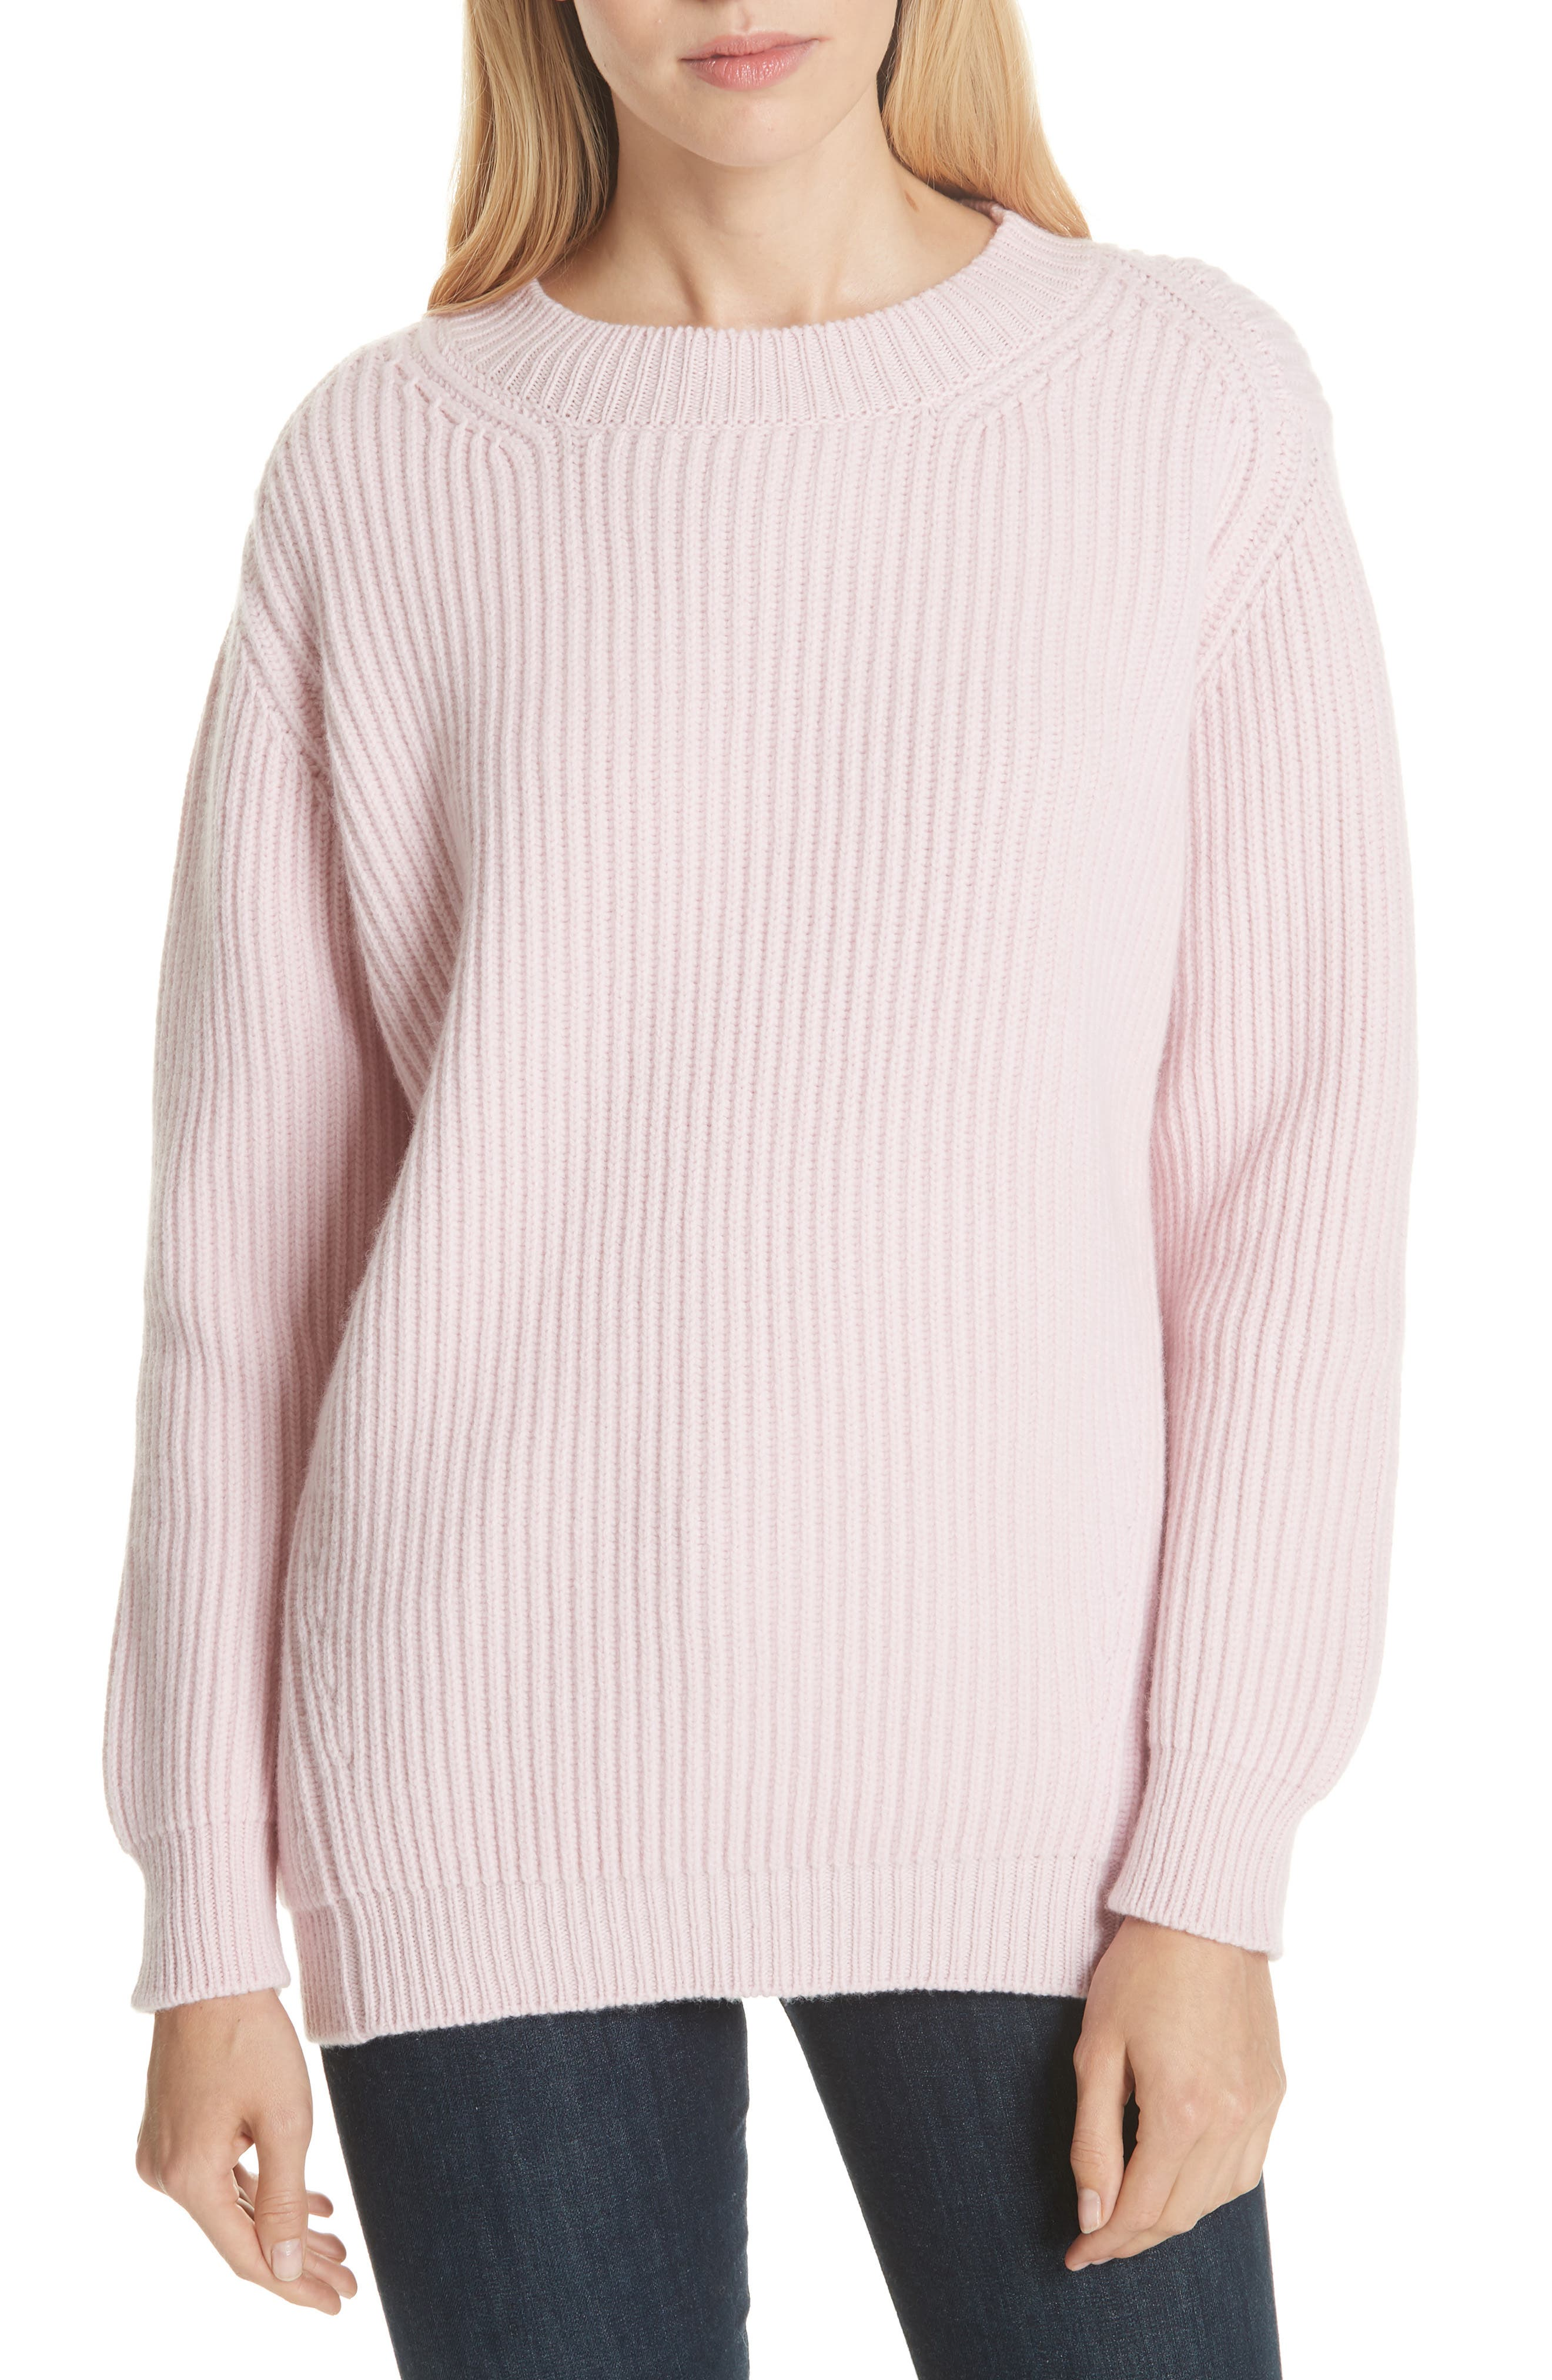 DAUGHTER Inver Ribbed Wool & Cashmere Sweater in Delicato